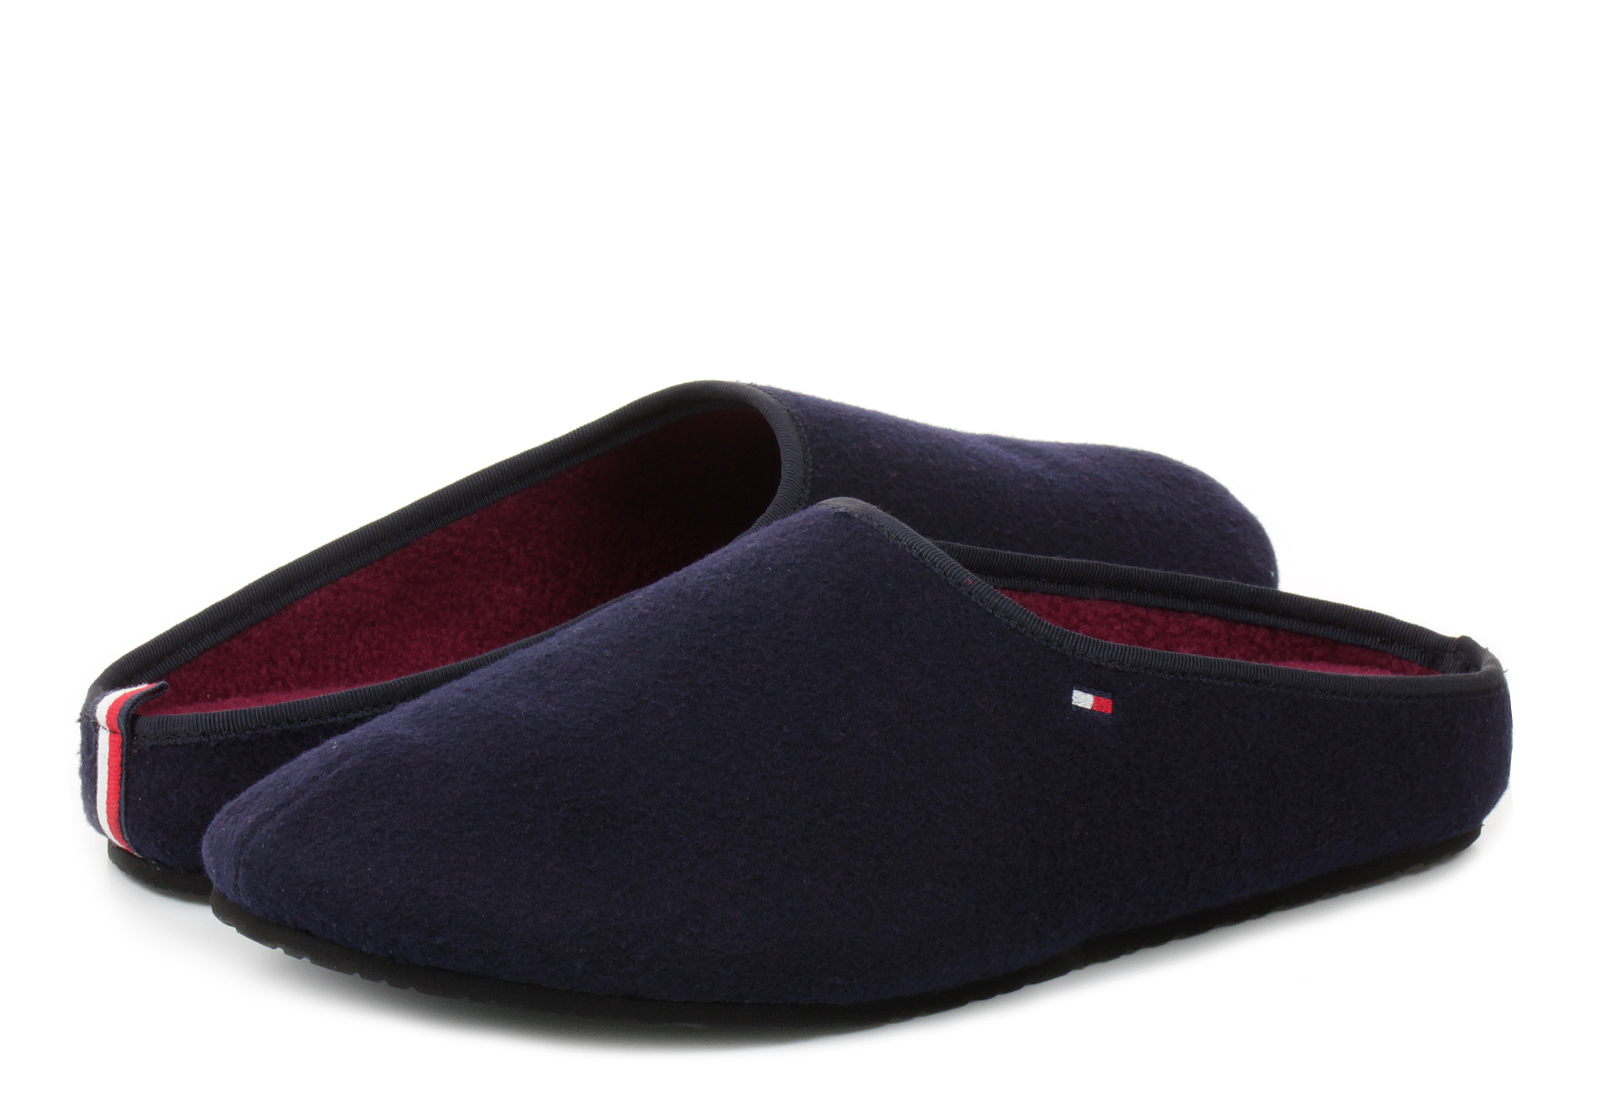 Tommy Hilfiger Papucs - Daffy 1d1 - 17F-0944-403 - Office Shoes ... afee98ff6d